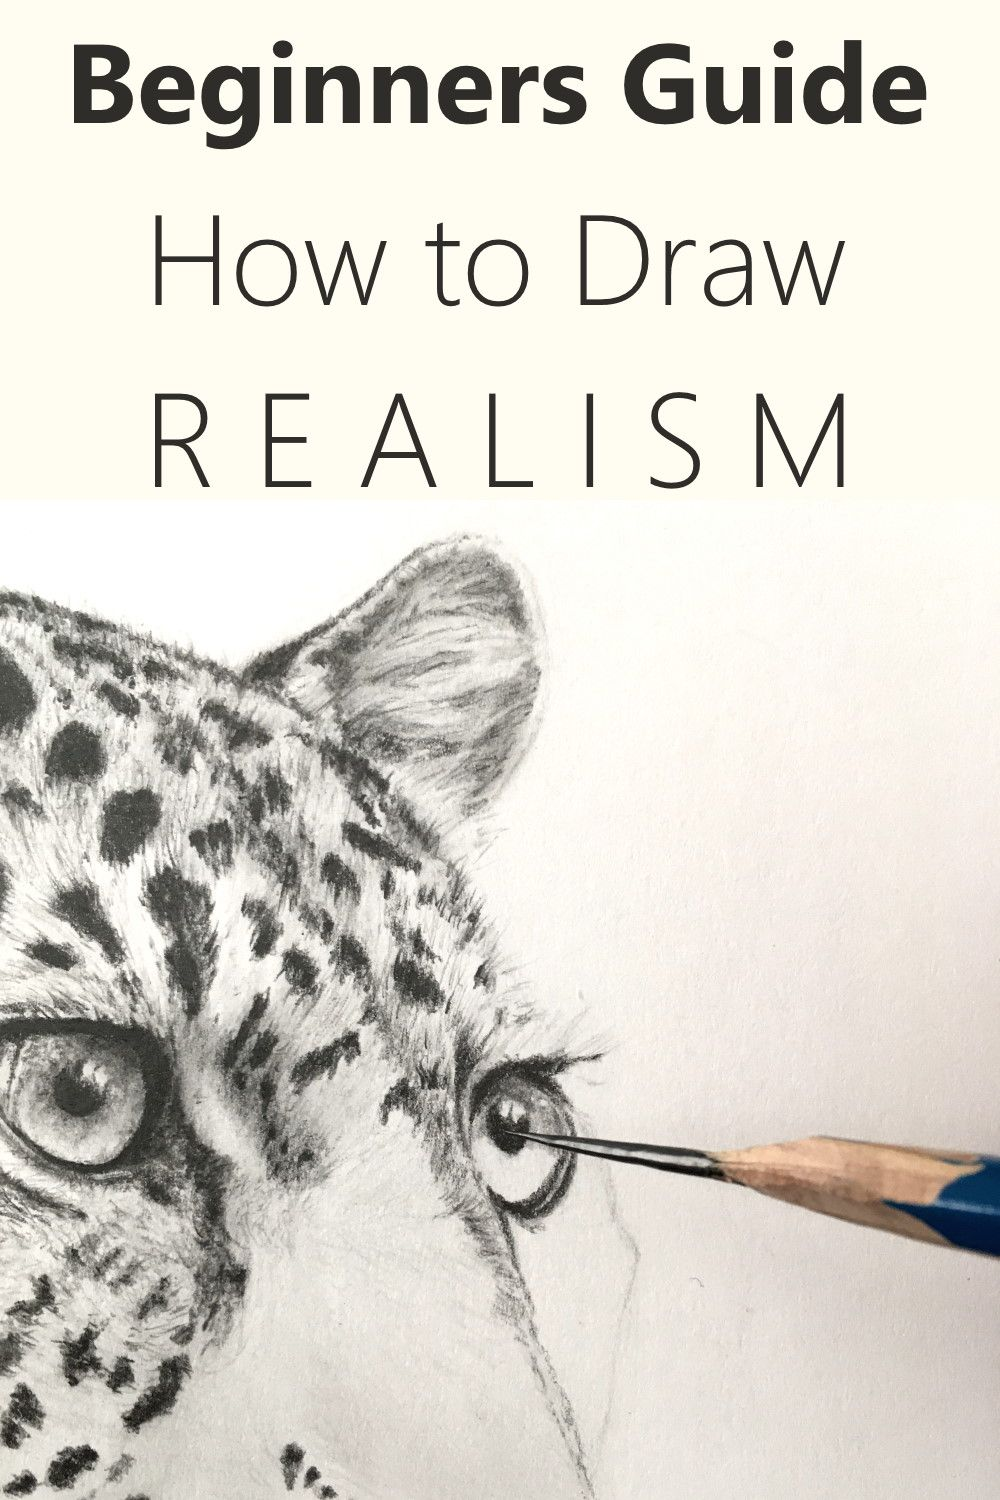 Learn to draw realism with pencils. Guide for the key factors for drawing in a realistic style with many drawings examples and tips to create your own beautiful fine art drawings and sketches. #realisticdrawing #pencildrawing #drawingtutorial #drawingtip #drawingtips #fineart